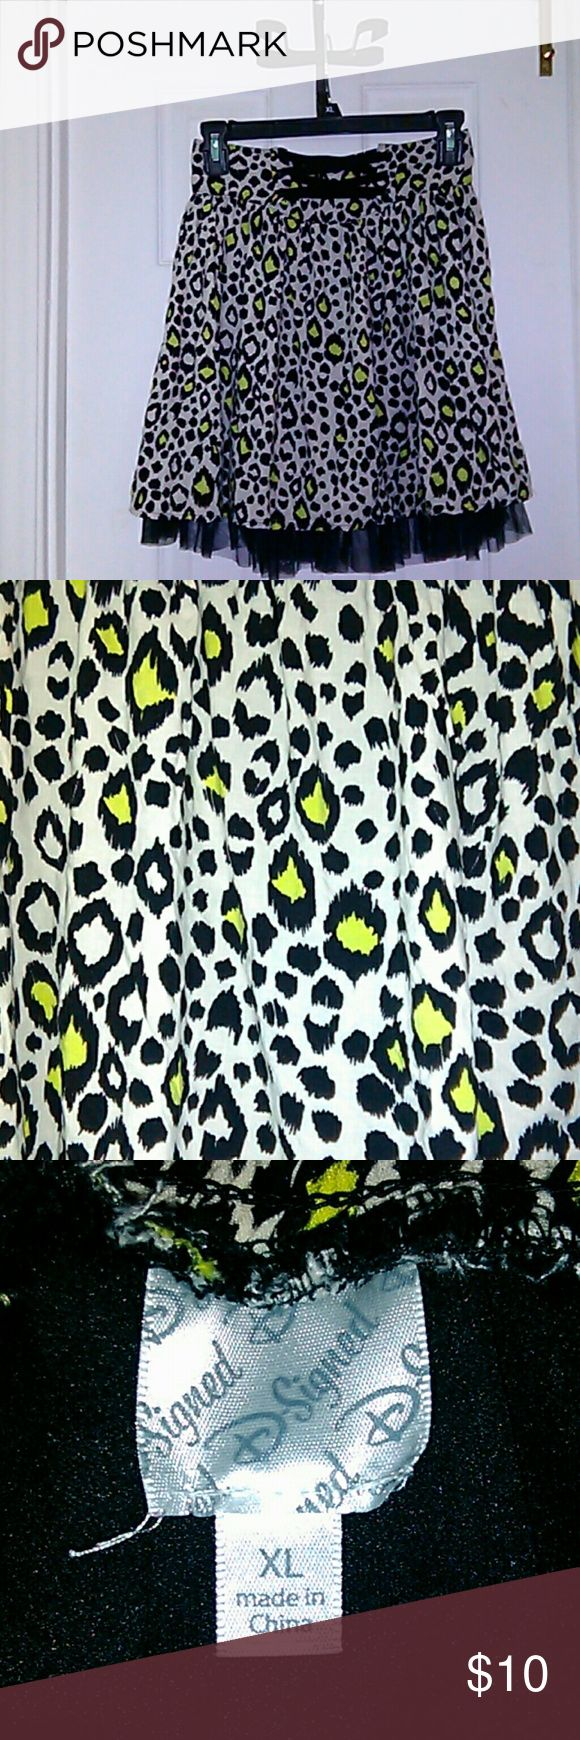 Fun & Frilly Neon Cheetah Print Skirt Girls just wanna have fun! Neon Cheetah Print  Skirt; black and white with hints of neon yellow. Black organza finishes off the hem. Gently used, gentle cycle and line dried. Go have some fun now! Disney Bottoms Skirts